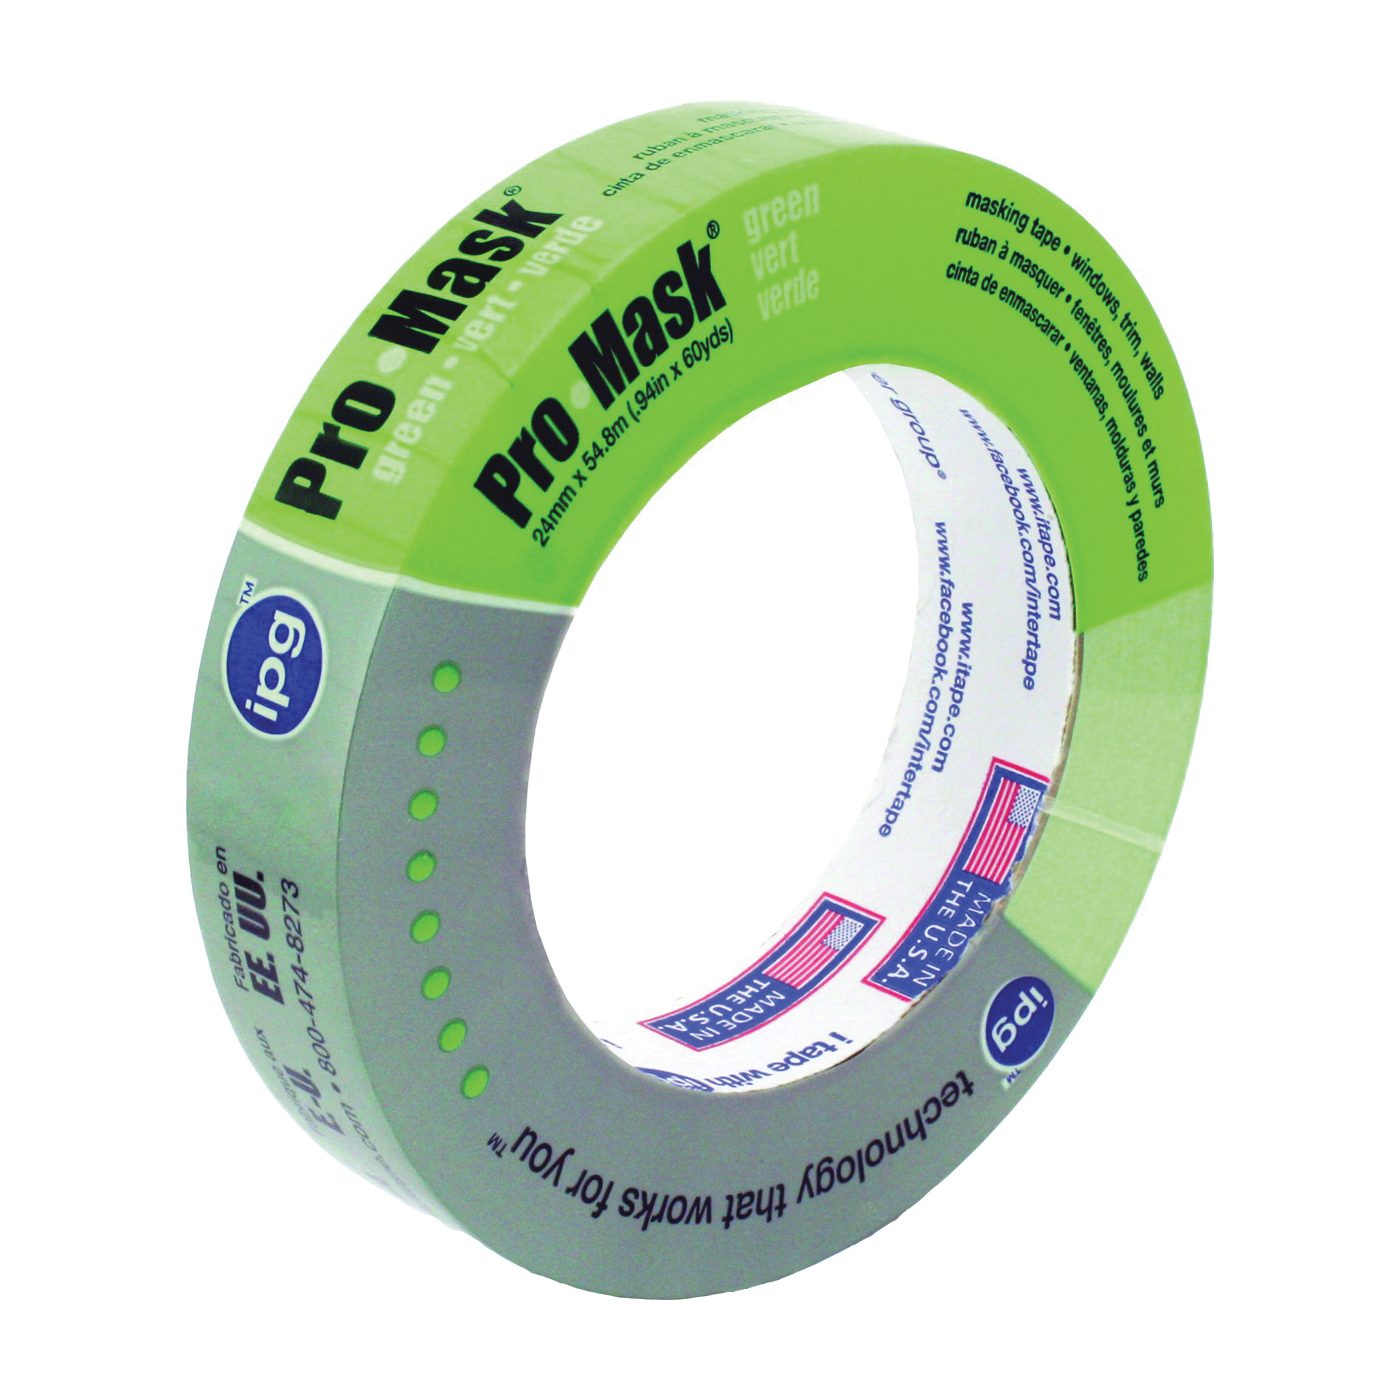 Picture of IPG 5803-1 Masking Tape, 60 yd L, 0.94 in W, Crepe Paper Backing, Light Green